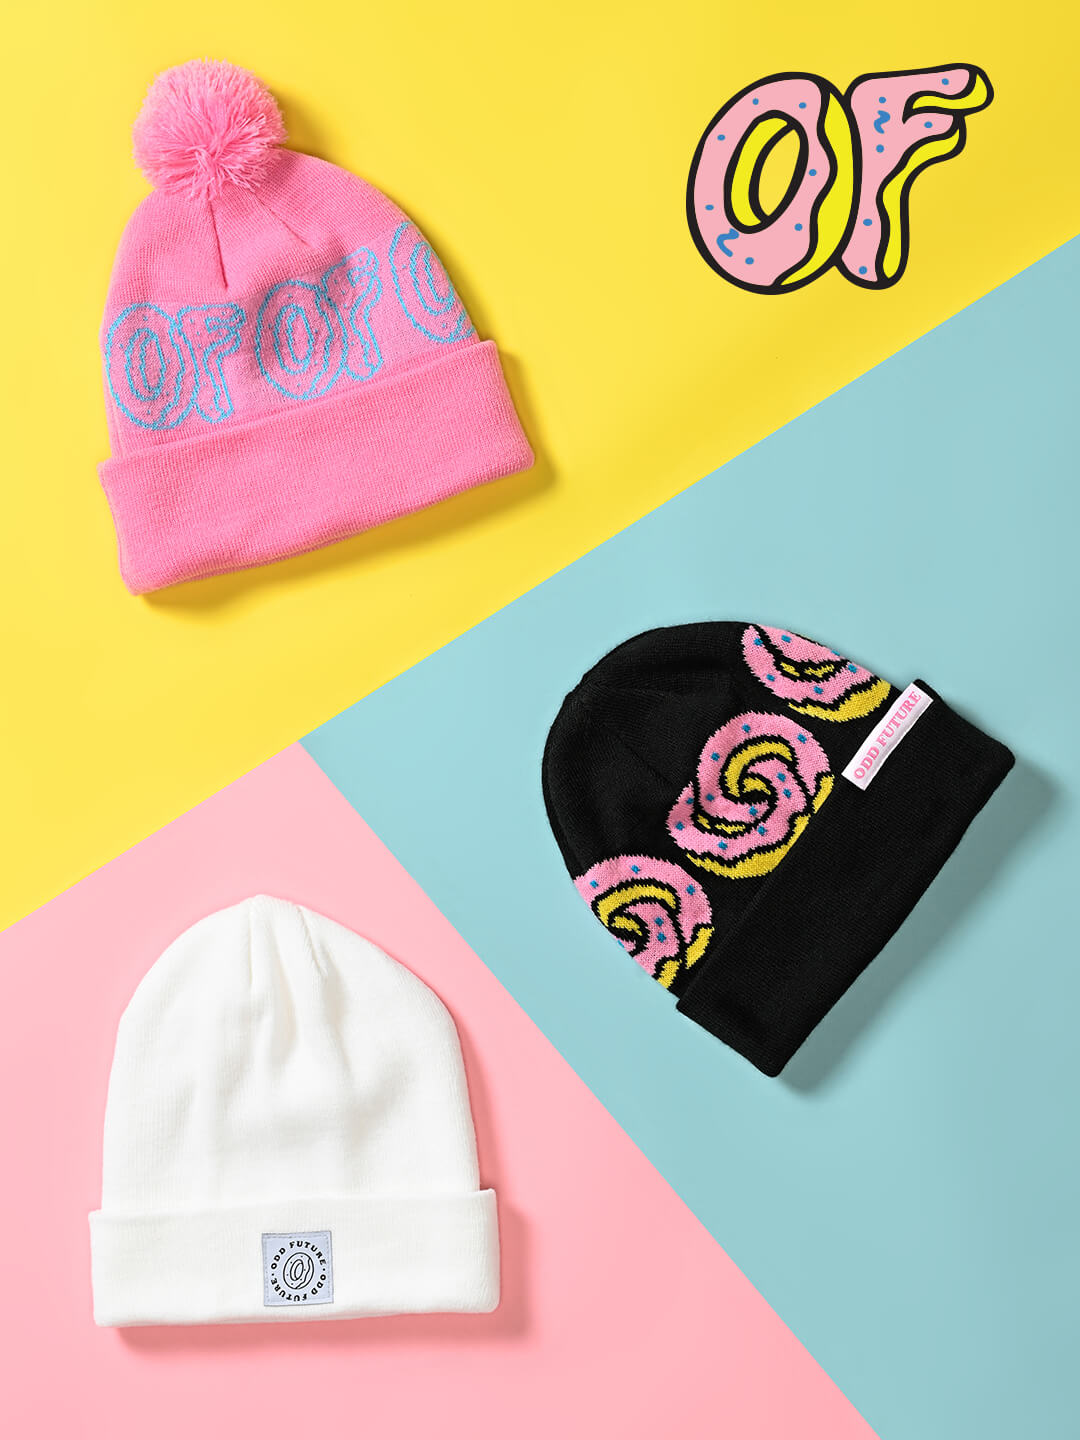 NEW BEANIES FROM ODD FUTURE - KEEP YOUR HEAD WARM - SHOP BEANIES 53d87cce818